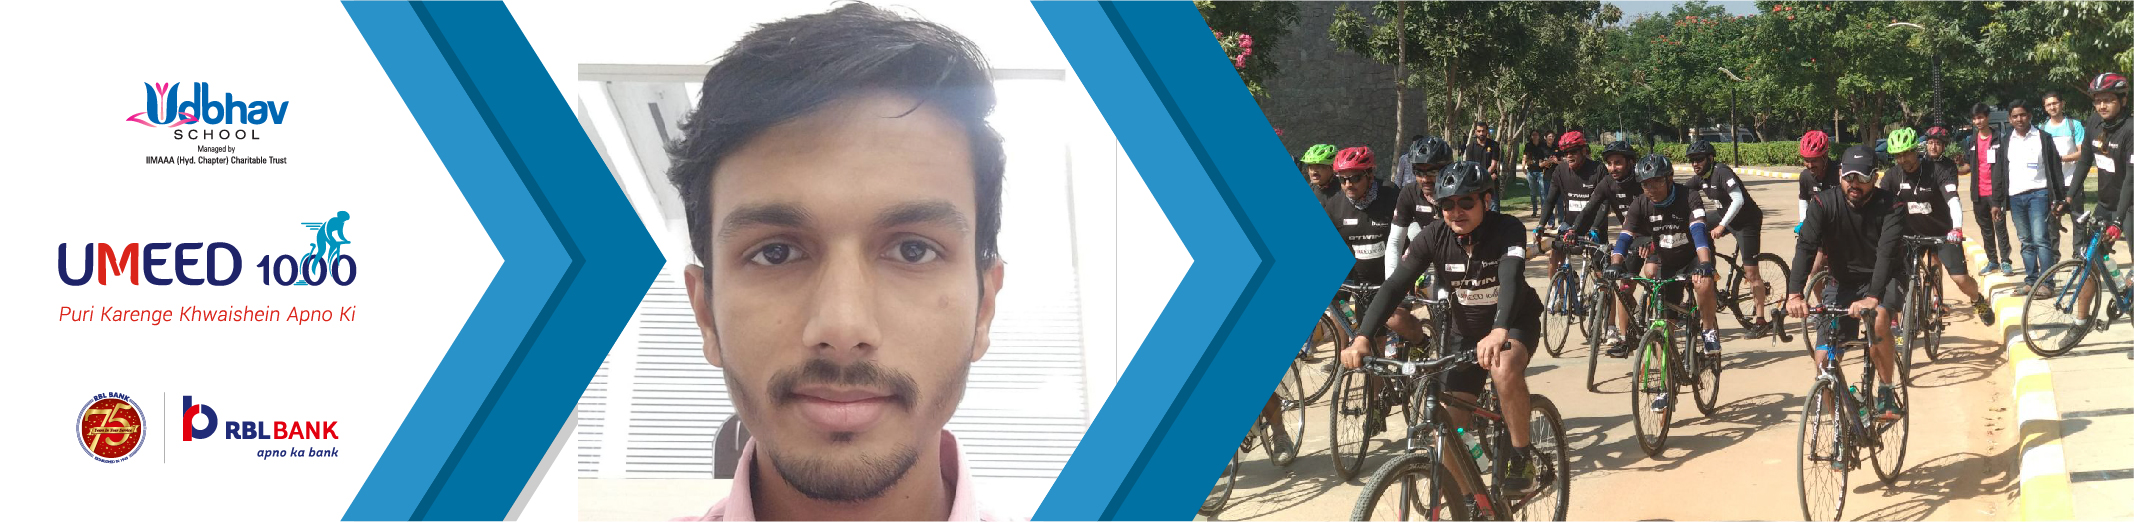 Sidhesh Nayak Cycles for Girls' Education as part of Umeed 1000 Cyclothon